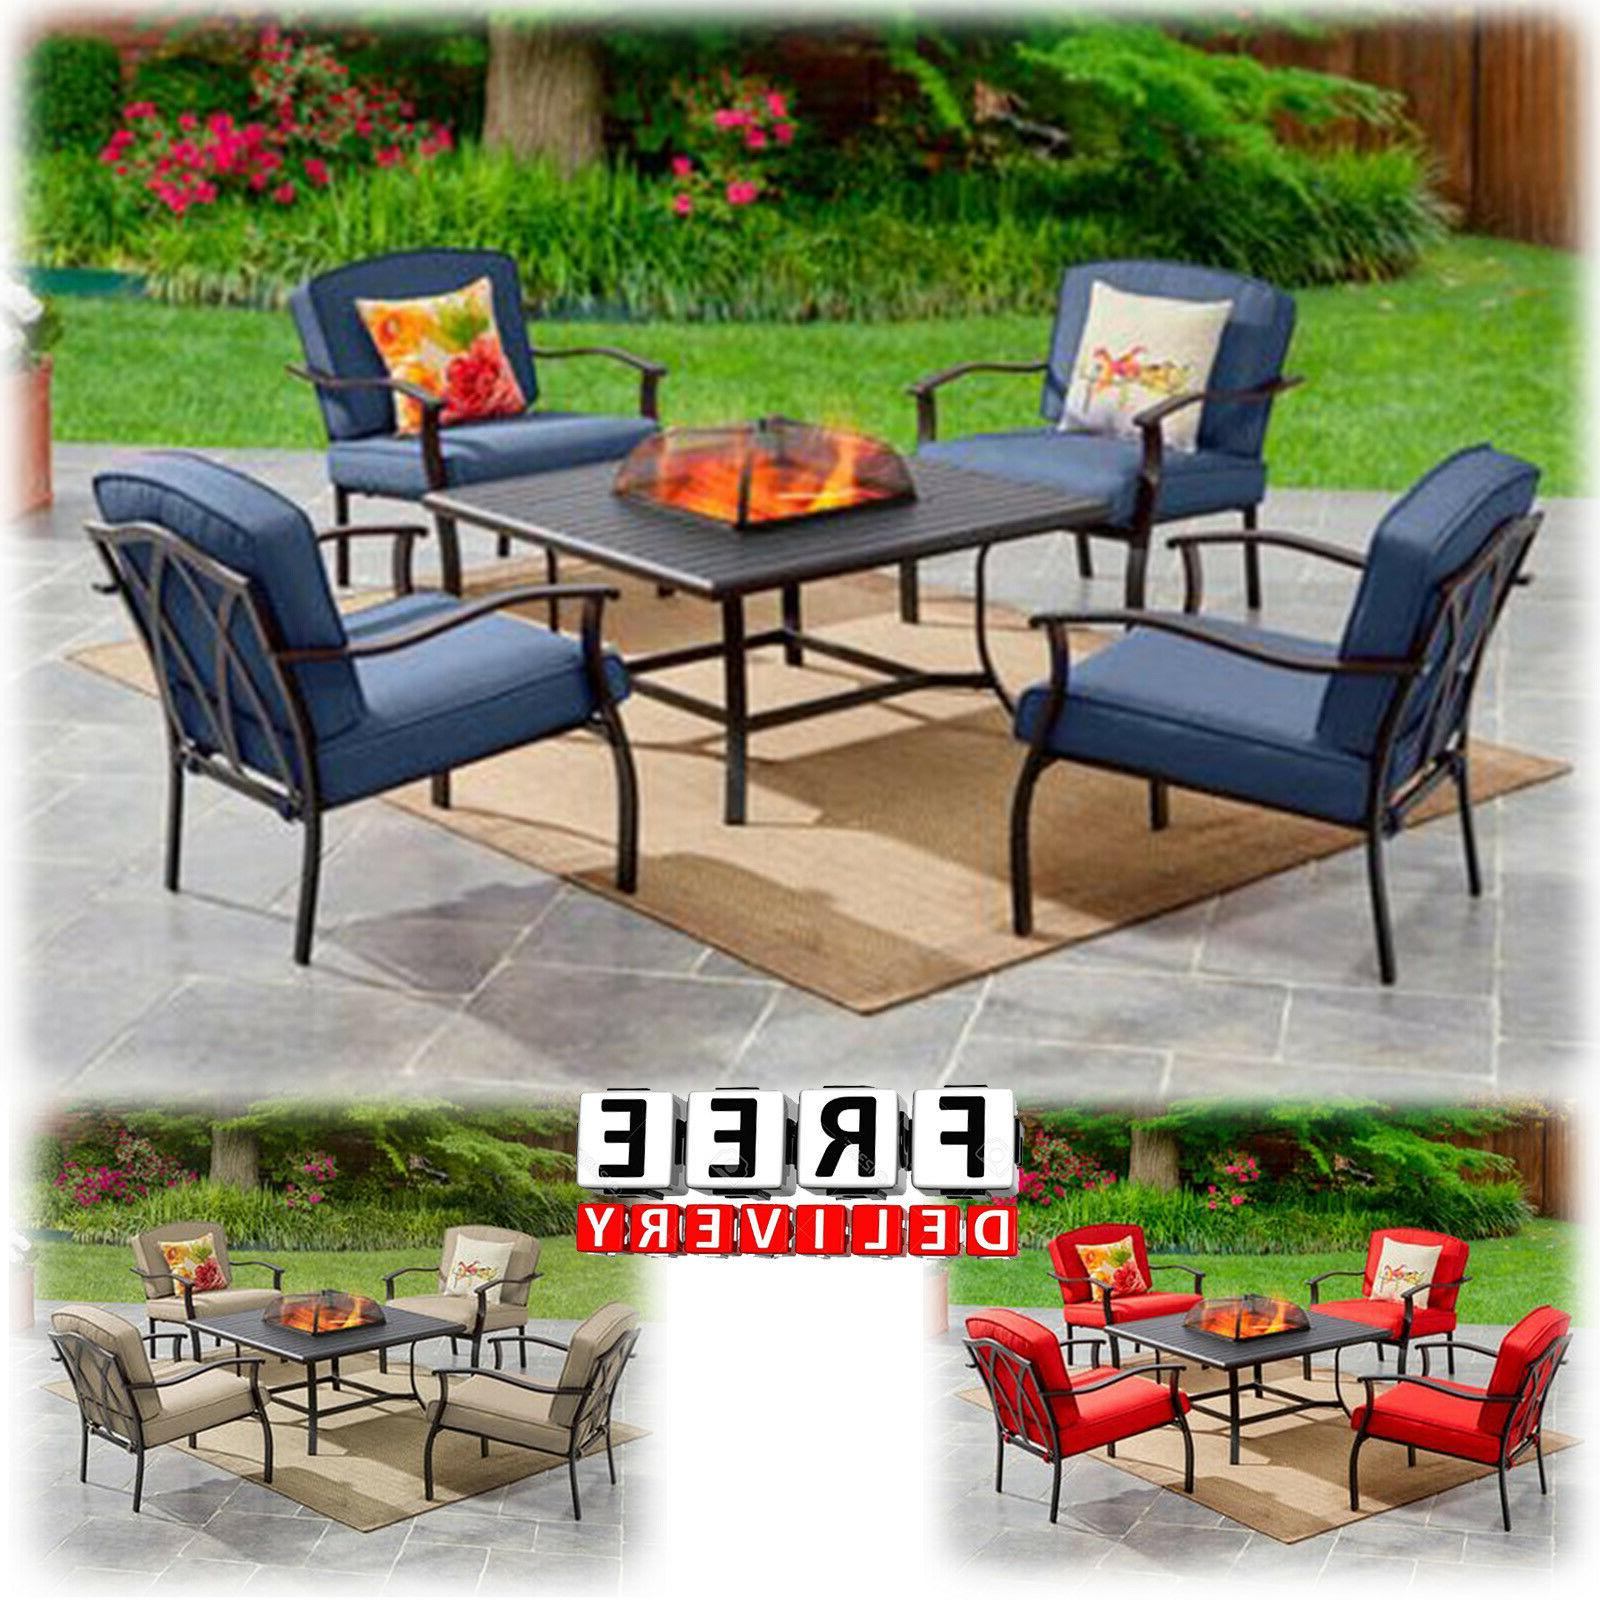 Outdoor Patio Dining Furniture Set 5 Piece Table Chairs Lawn